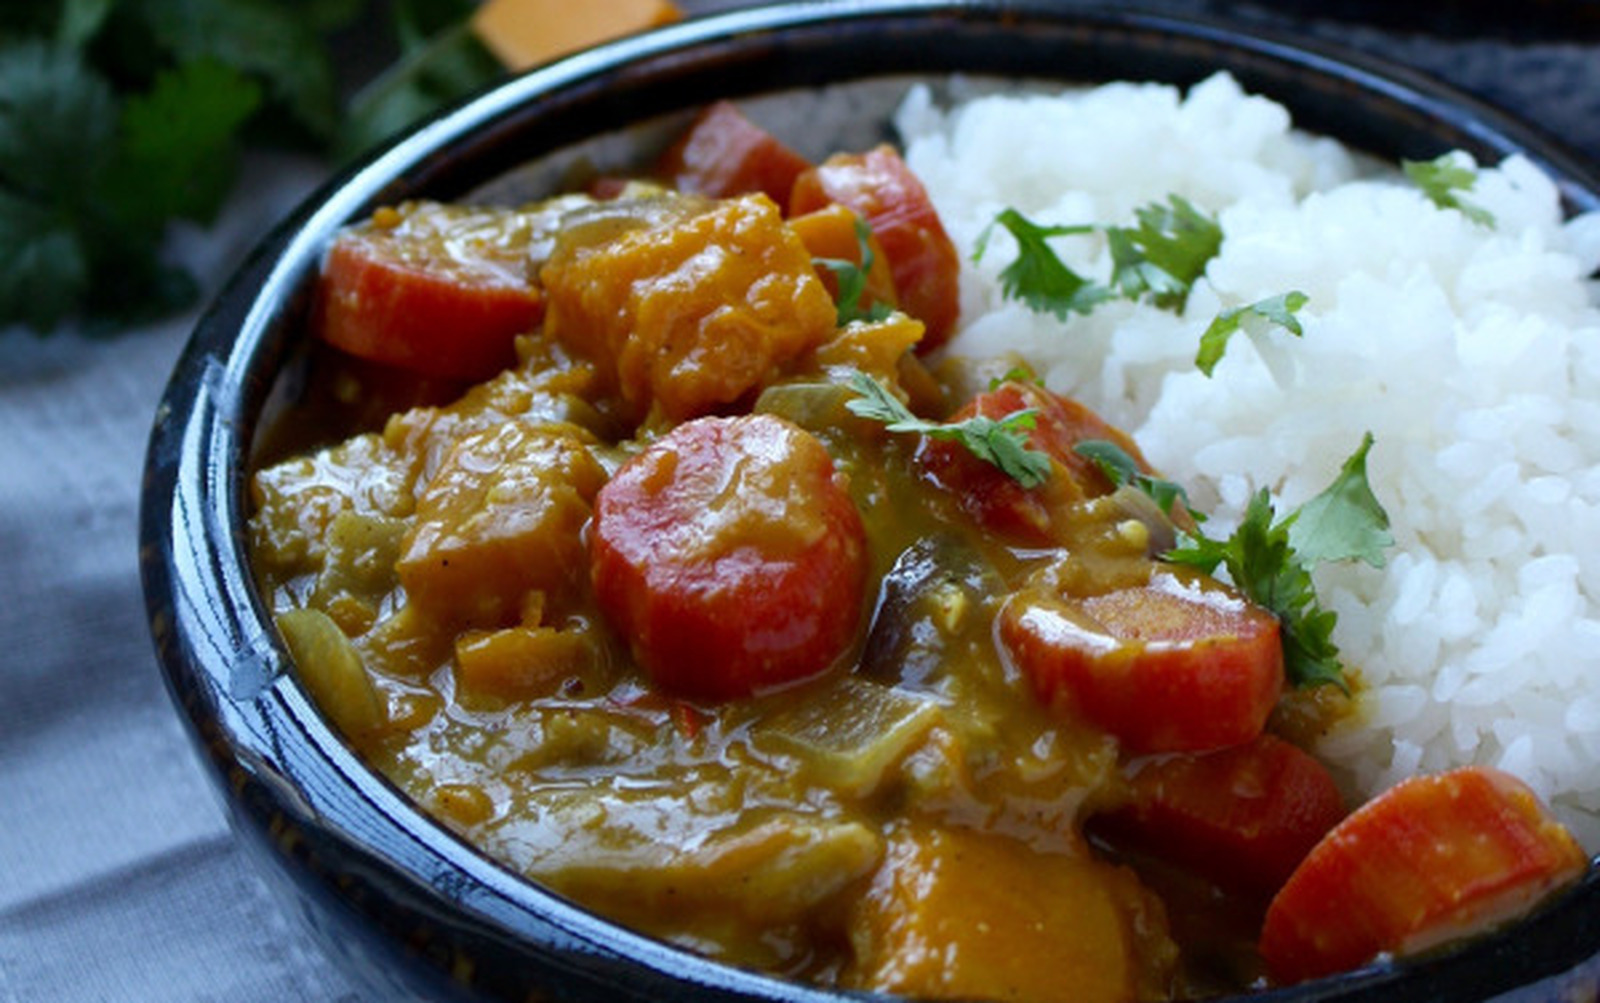 Vegan and gluten-free Quick Pumpkin and Carrot Curry